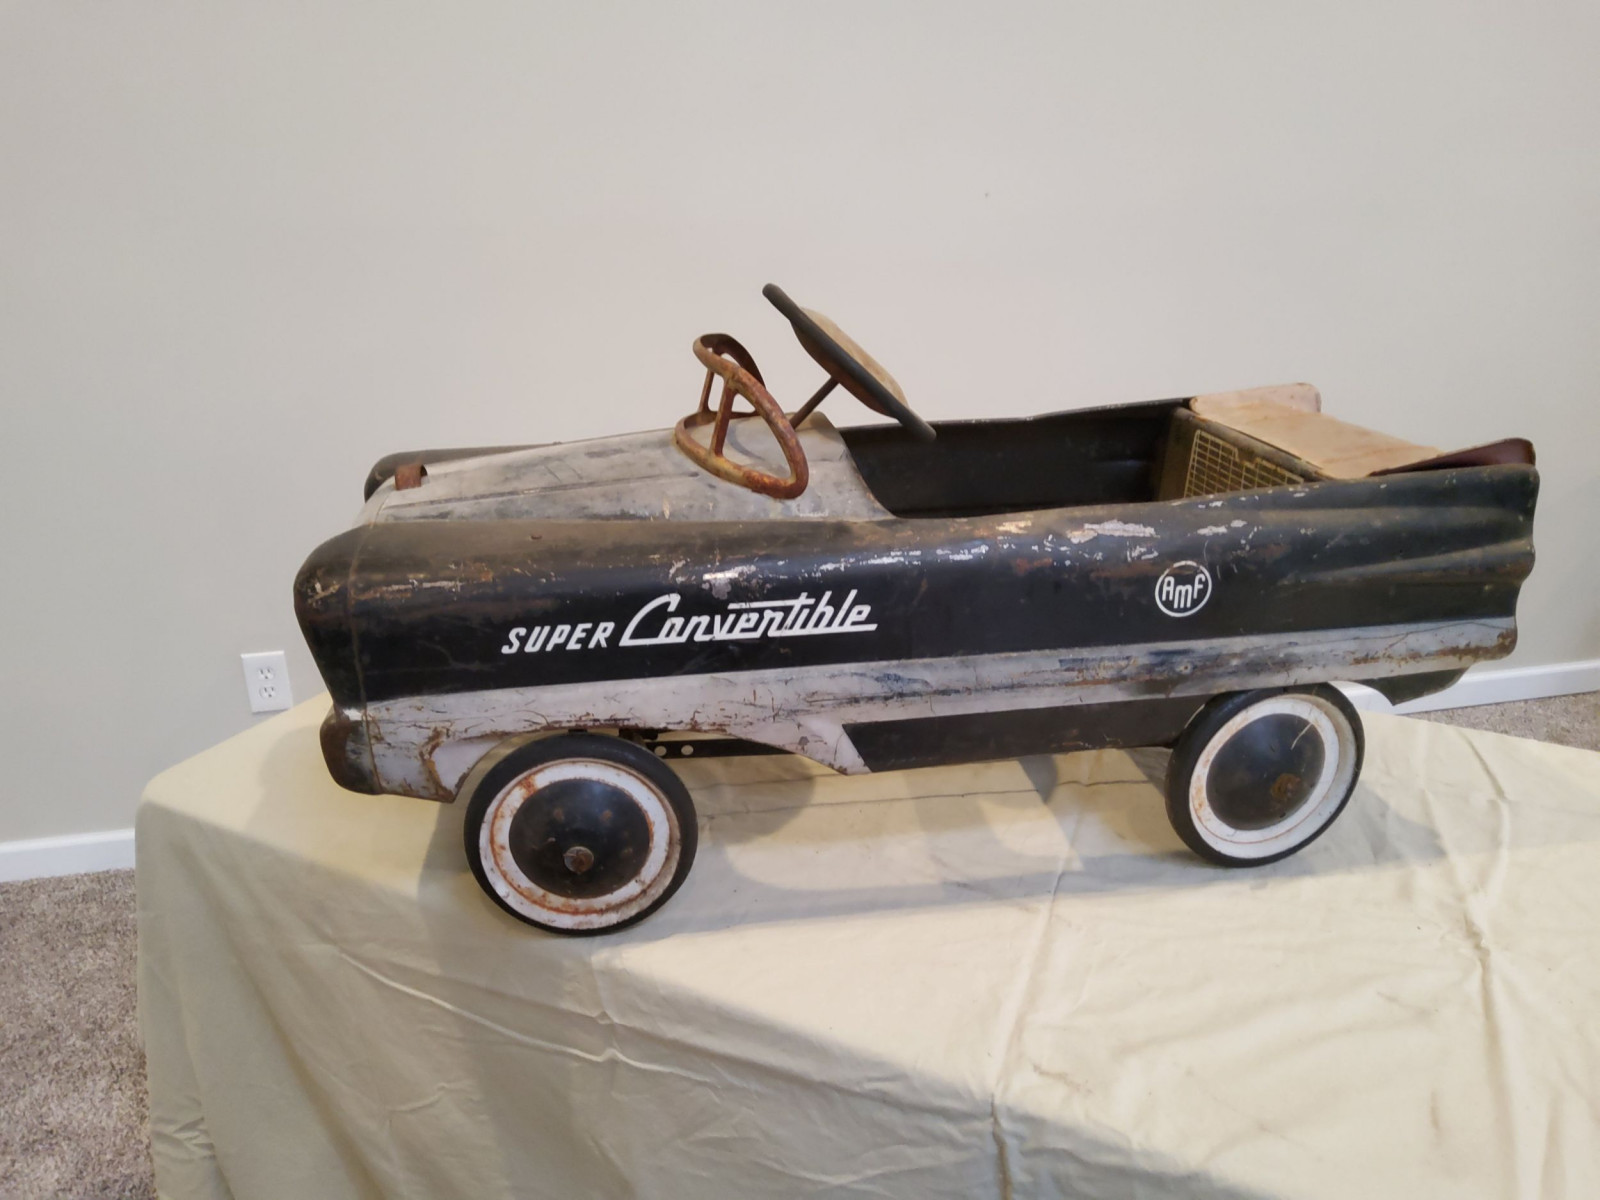 1954 AMF Super Convertible Pedal Car - Image 5